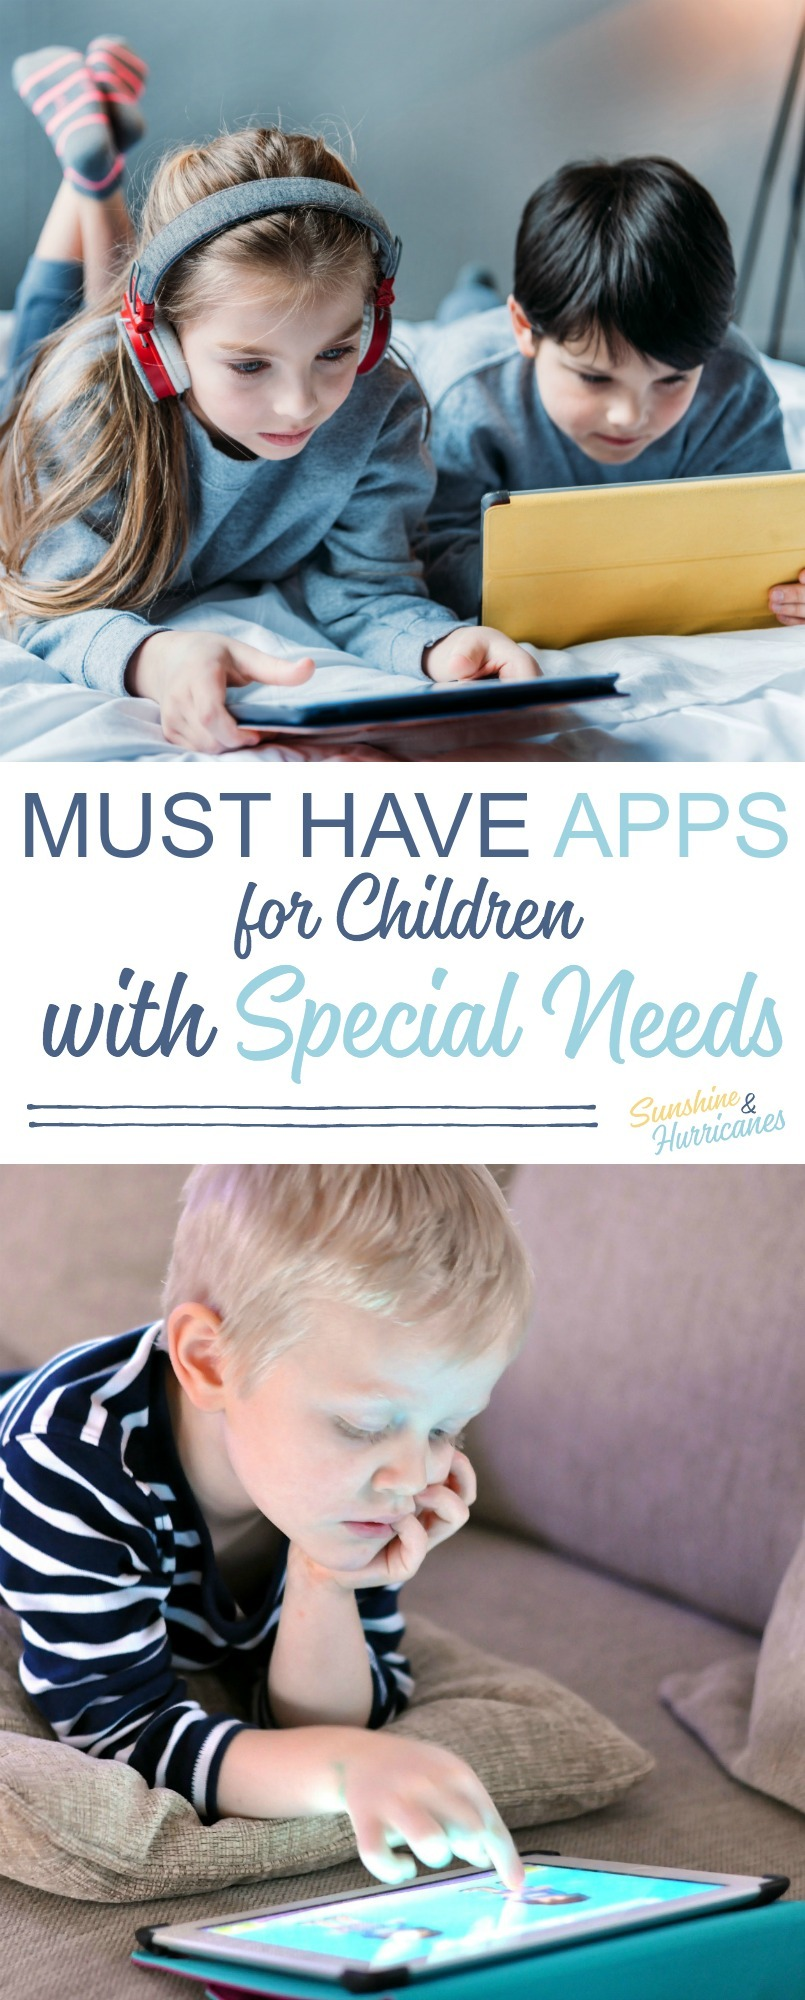 Must Have Special Needs Apps for Children. Technology has become a game changer when it comes to helping kids with learning disabilities, Autism, ADHD and other special needs. Learn more about the best apps you can use with your child .